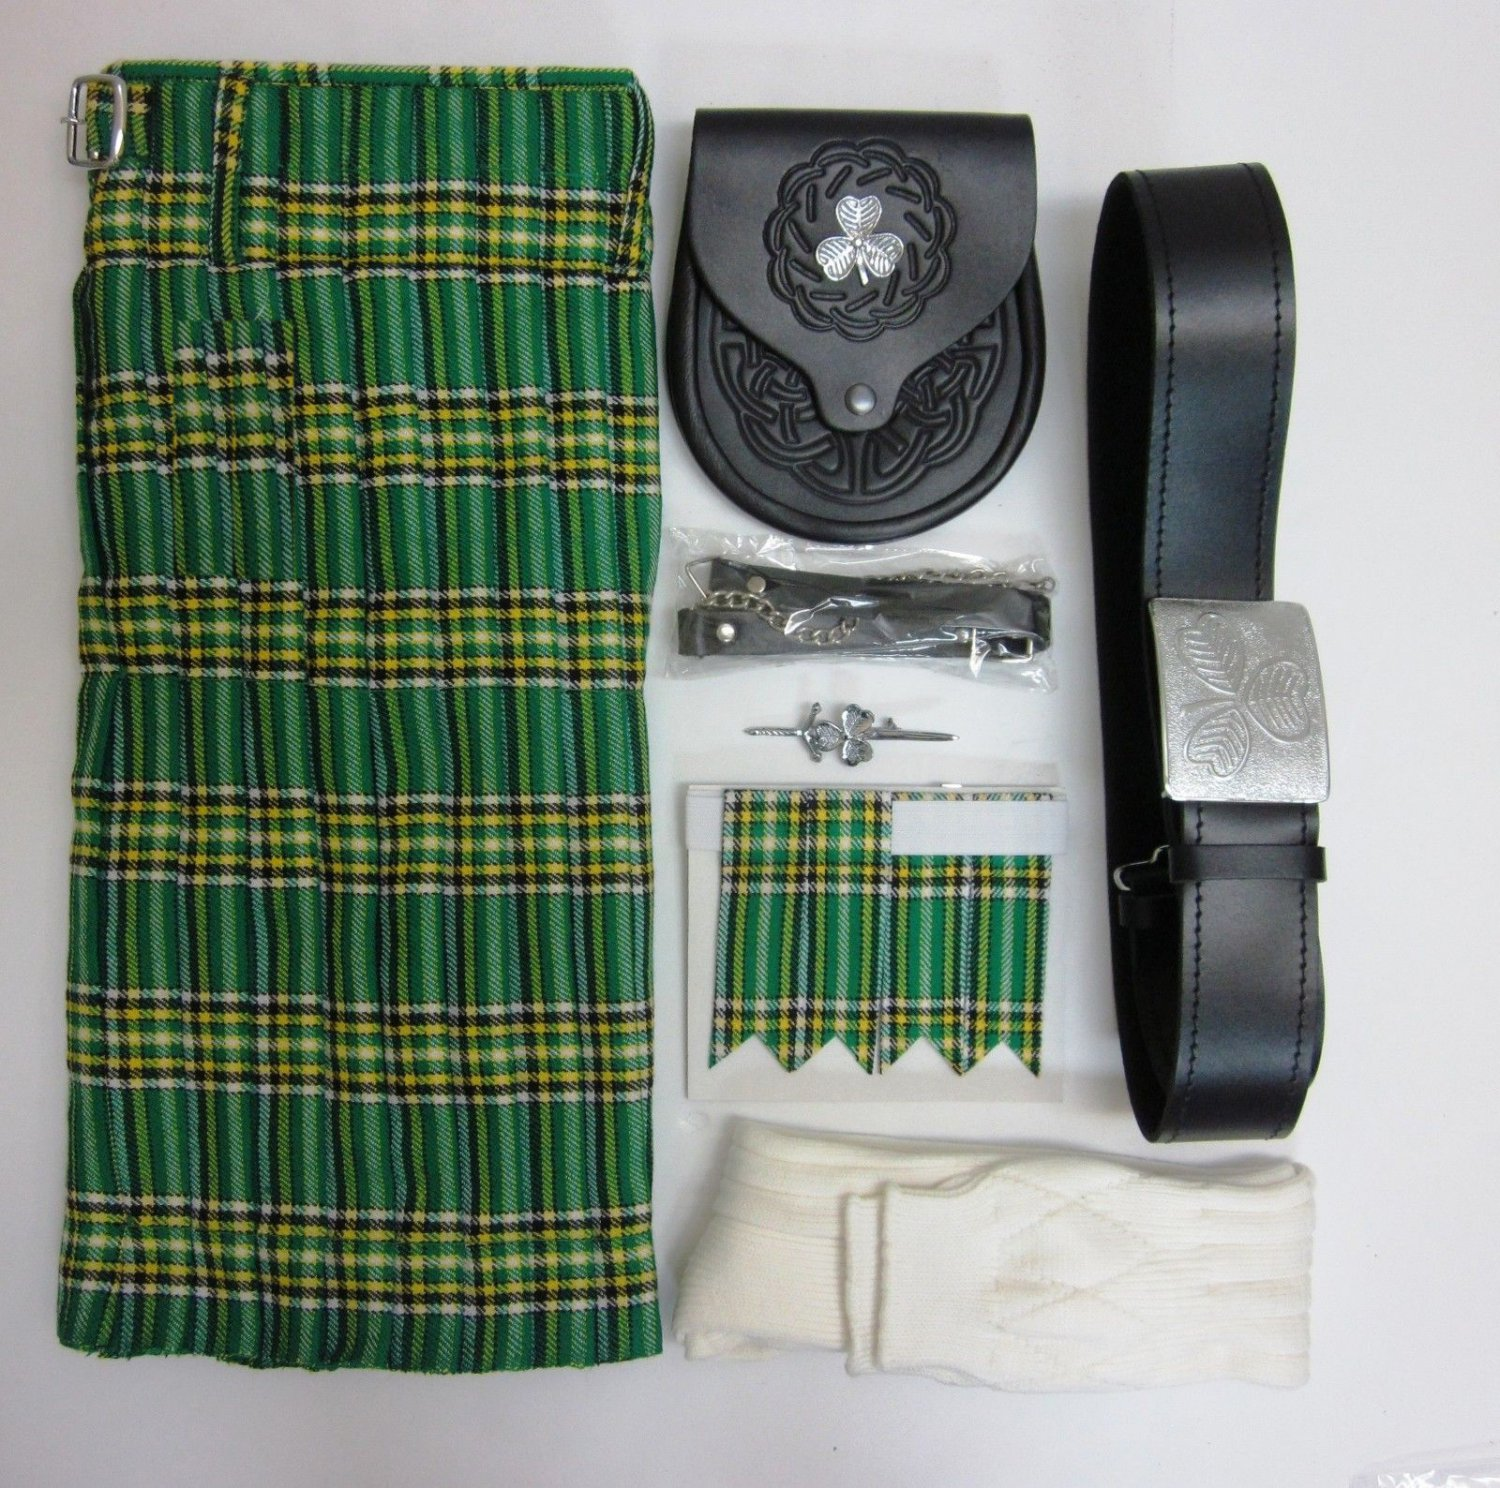 Waist 46 Irish National Tartan Kilt with Sporran Belt Hose and Kilt Pin Flashes